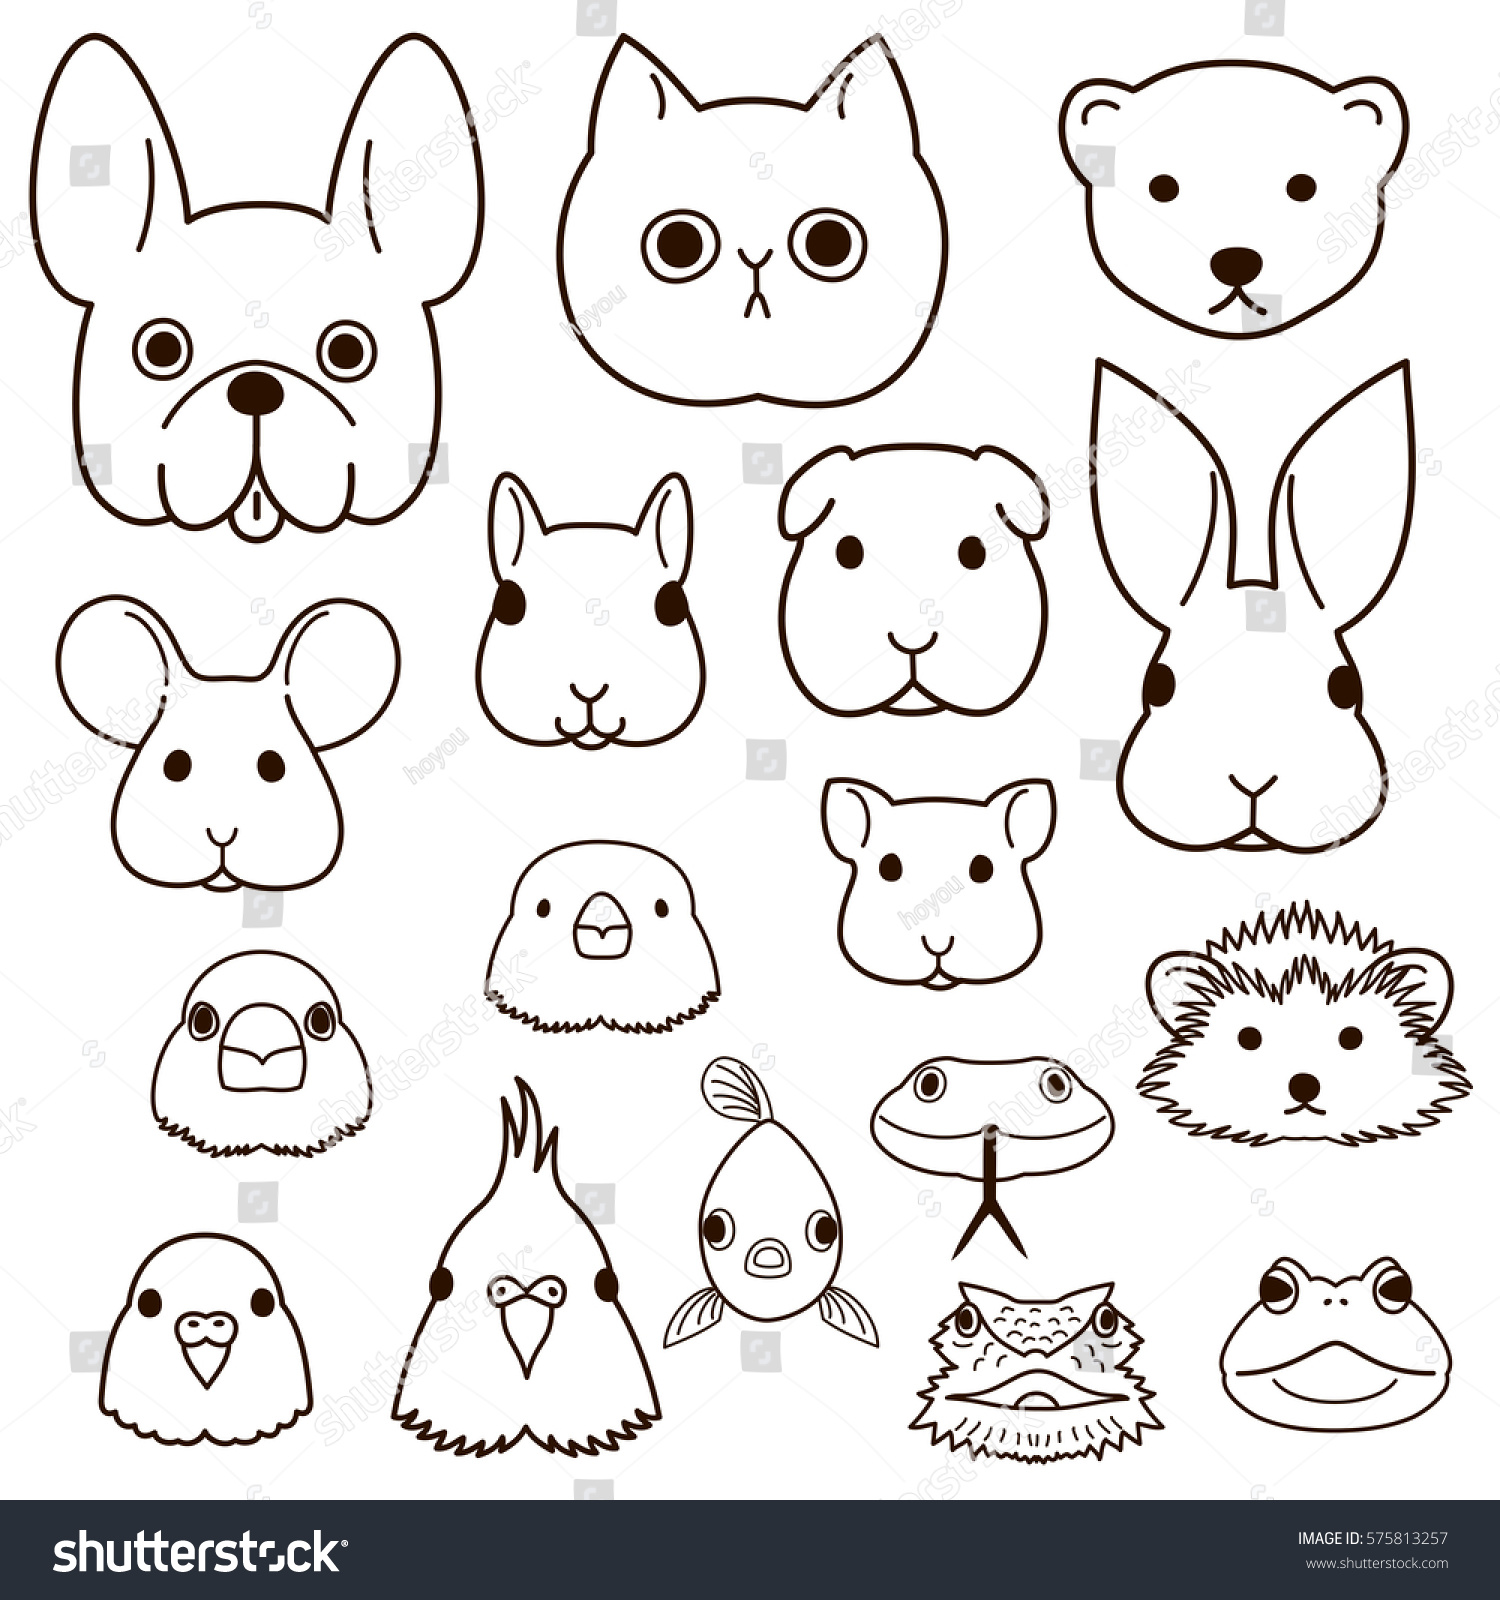 Line Drawing Of Animal Faces : Pet animals faces line art set stock vector